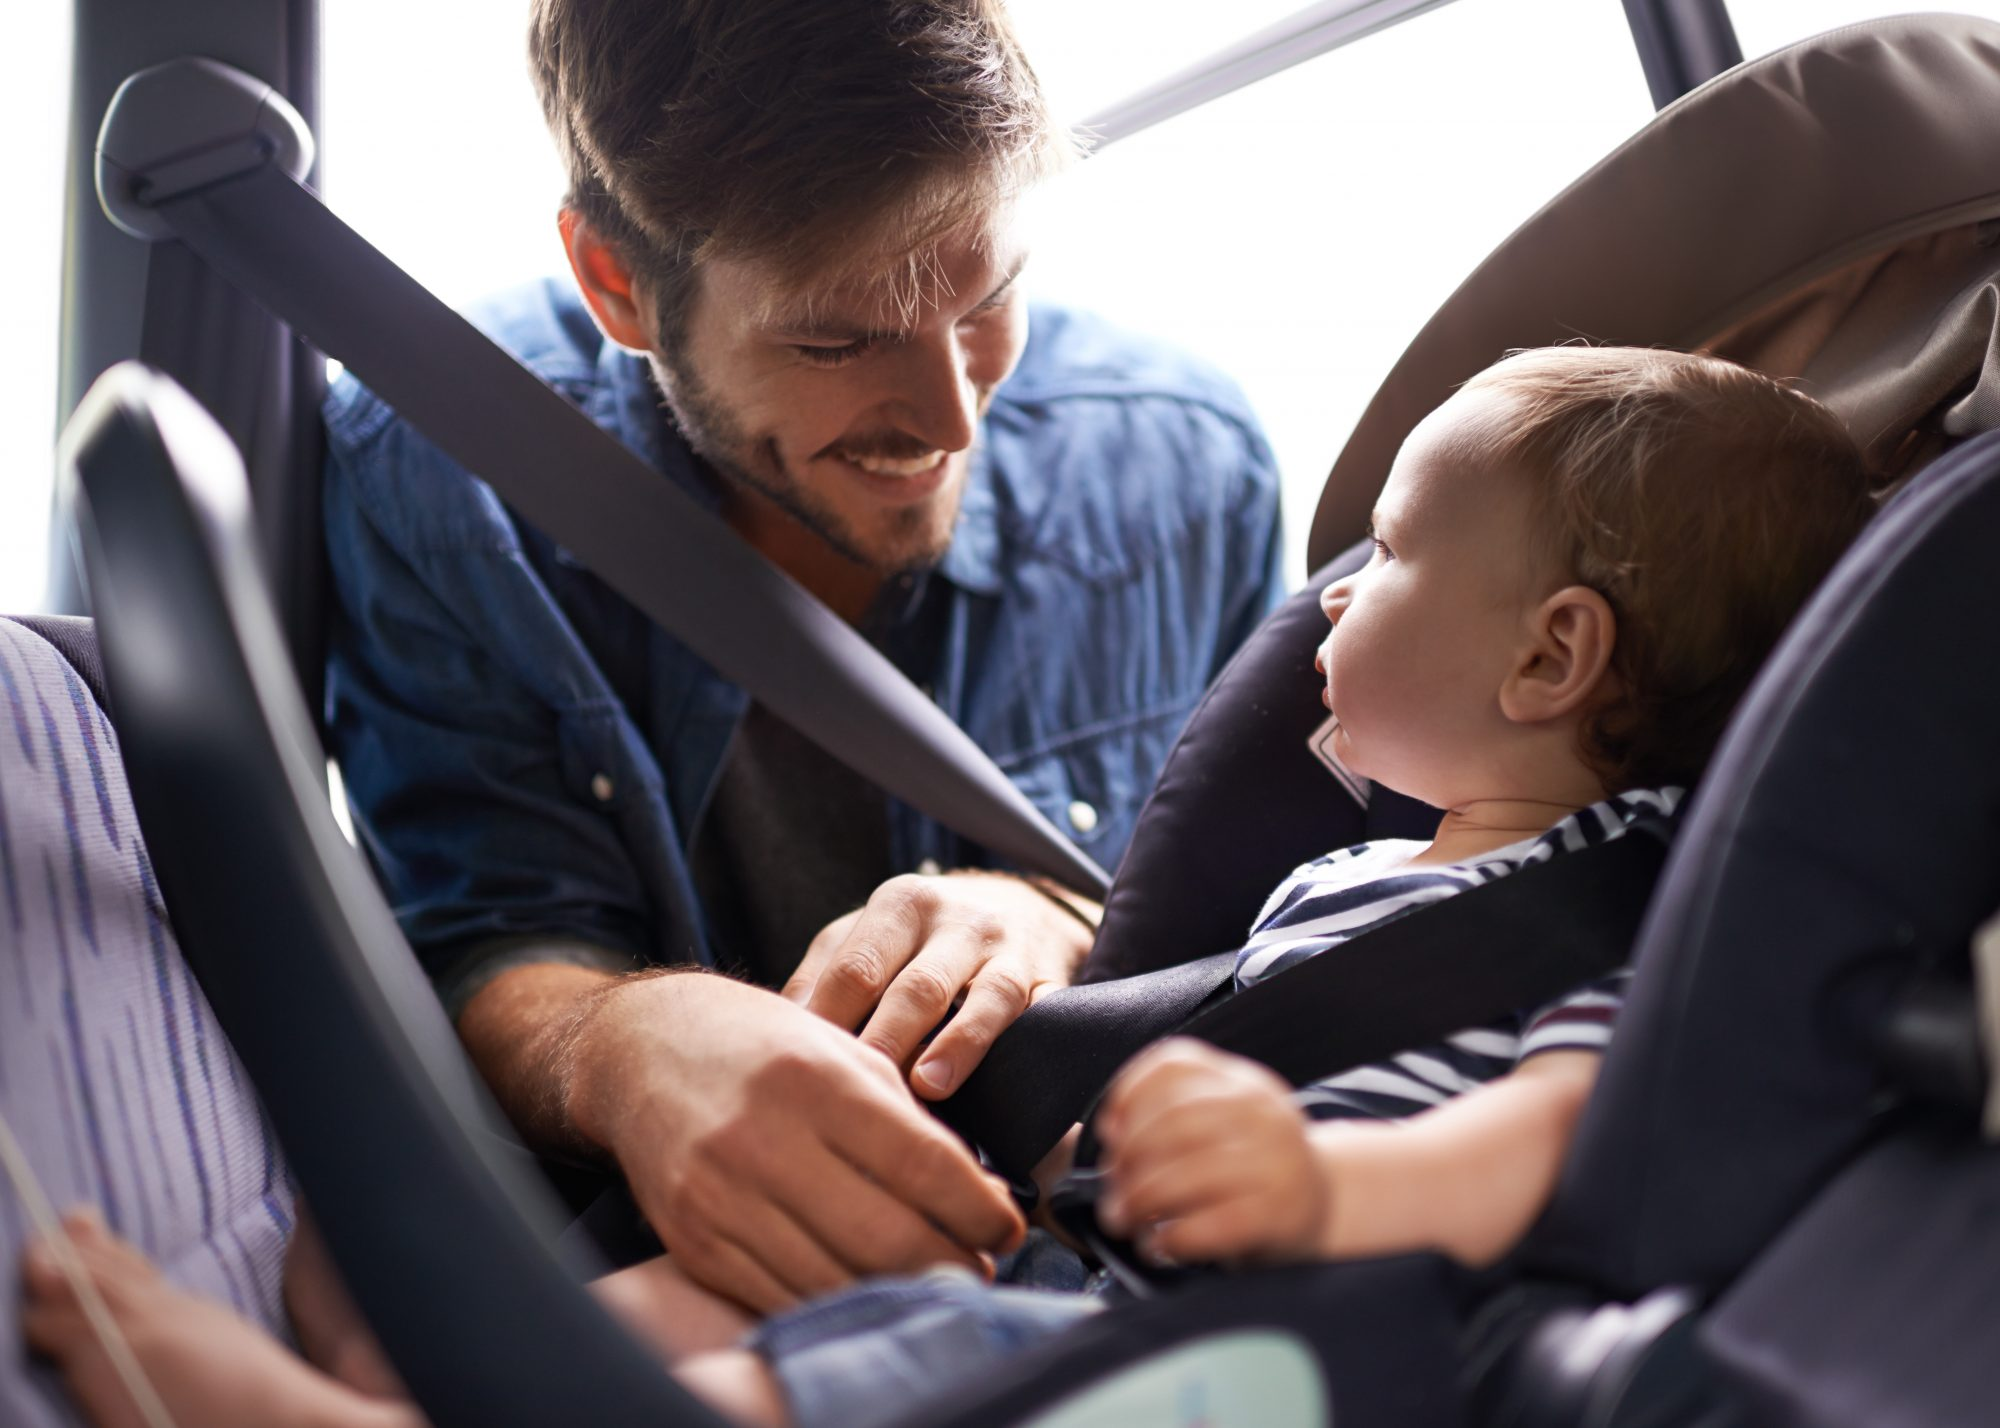 Young father smiles while he buckles his baby into car seat.